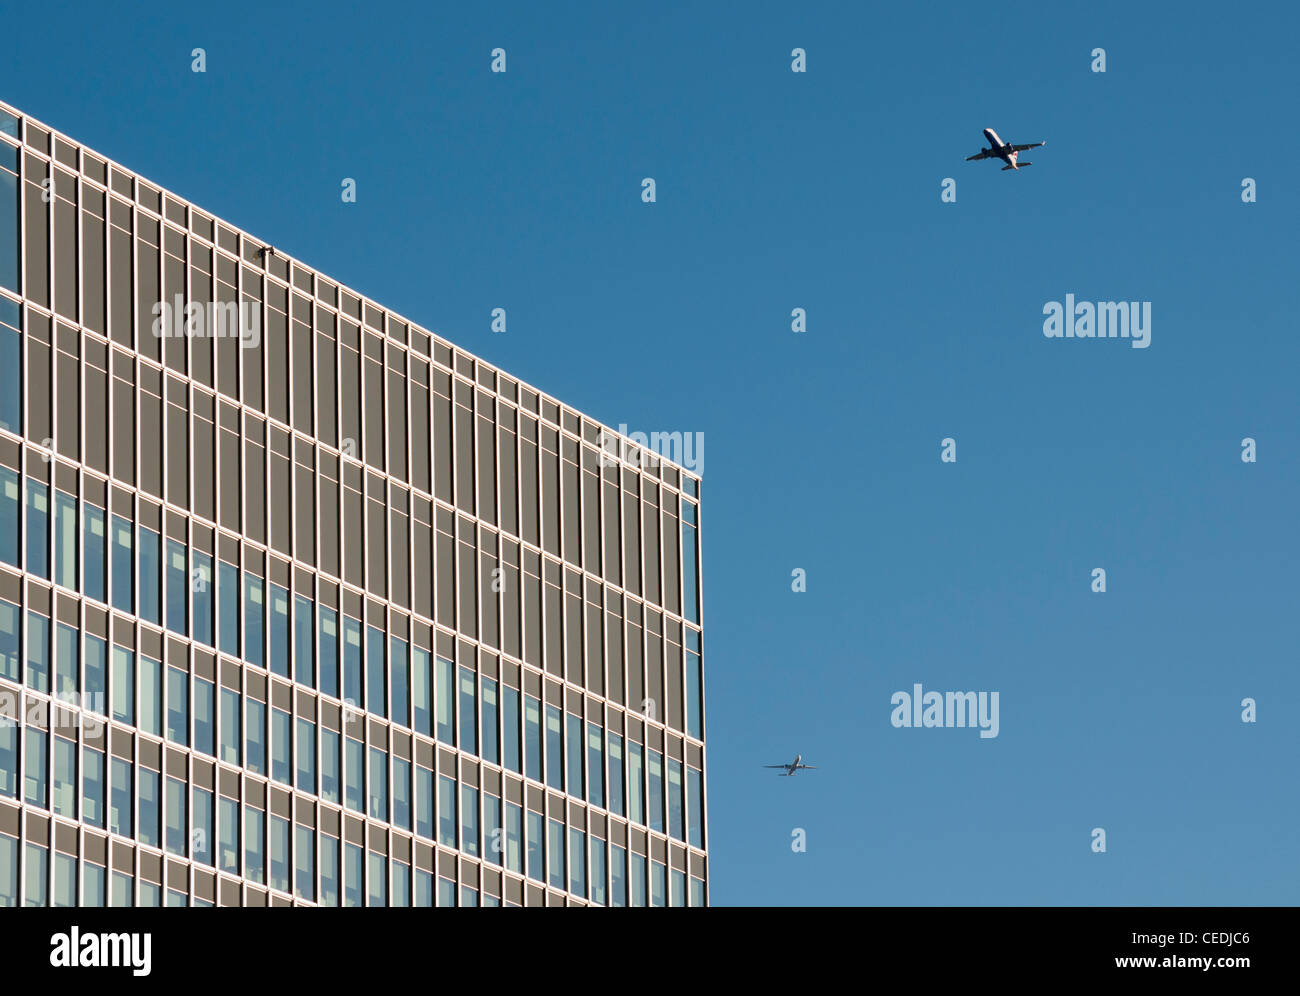 Two Jet Airliners and State Street Bank at 20 Churchill Place, Canary Wharf, Docklands, London, United Kingdom - Stock Image